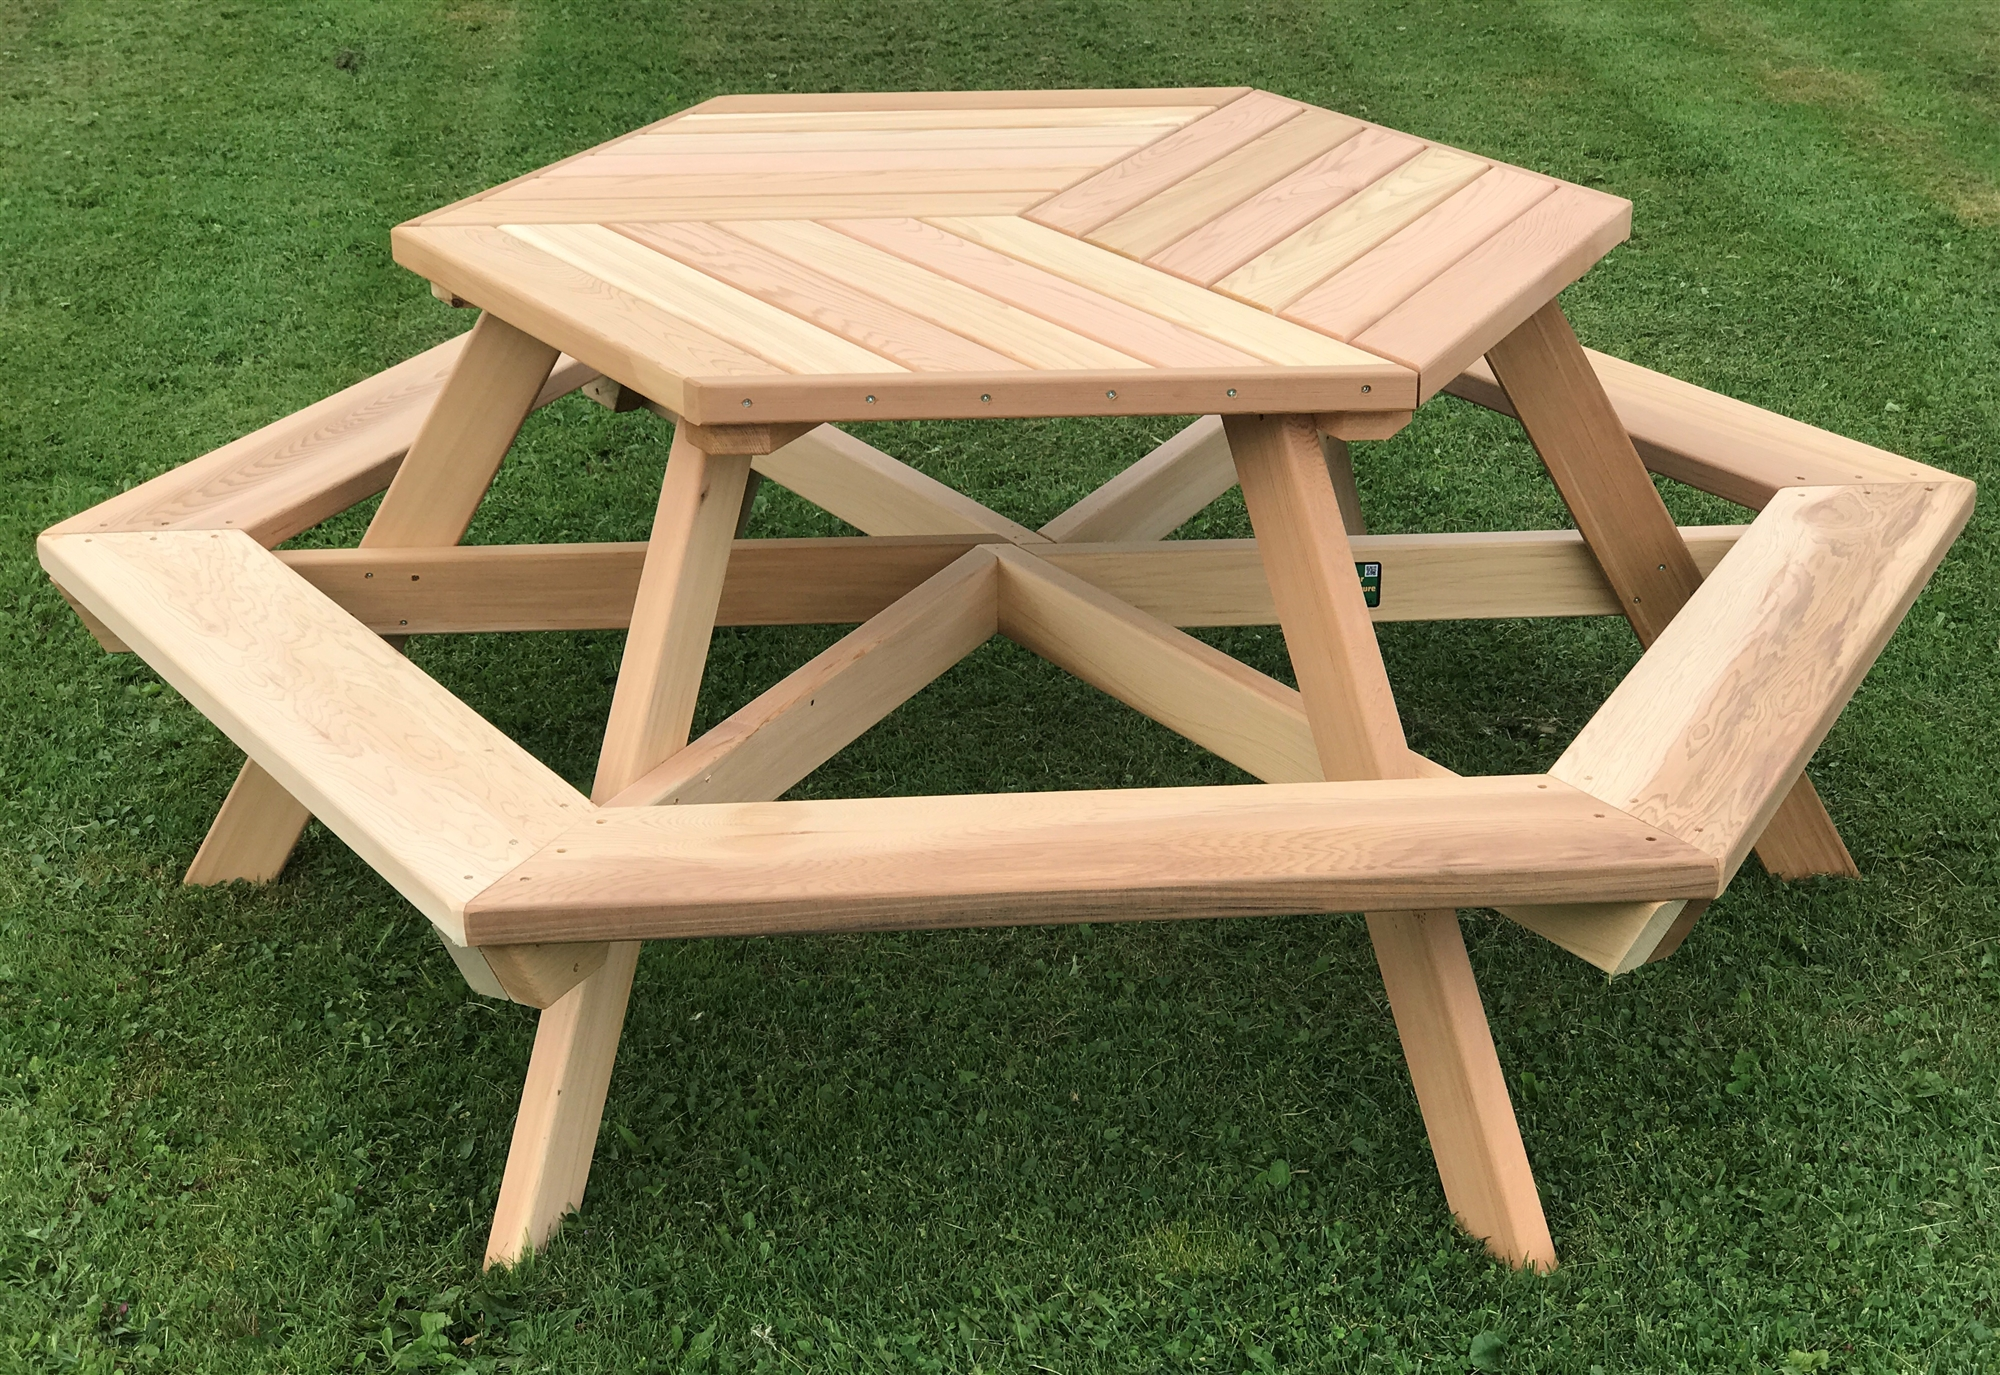 ... Plans Free together with Hexagon Picnic Table Plans besides American